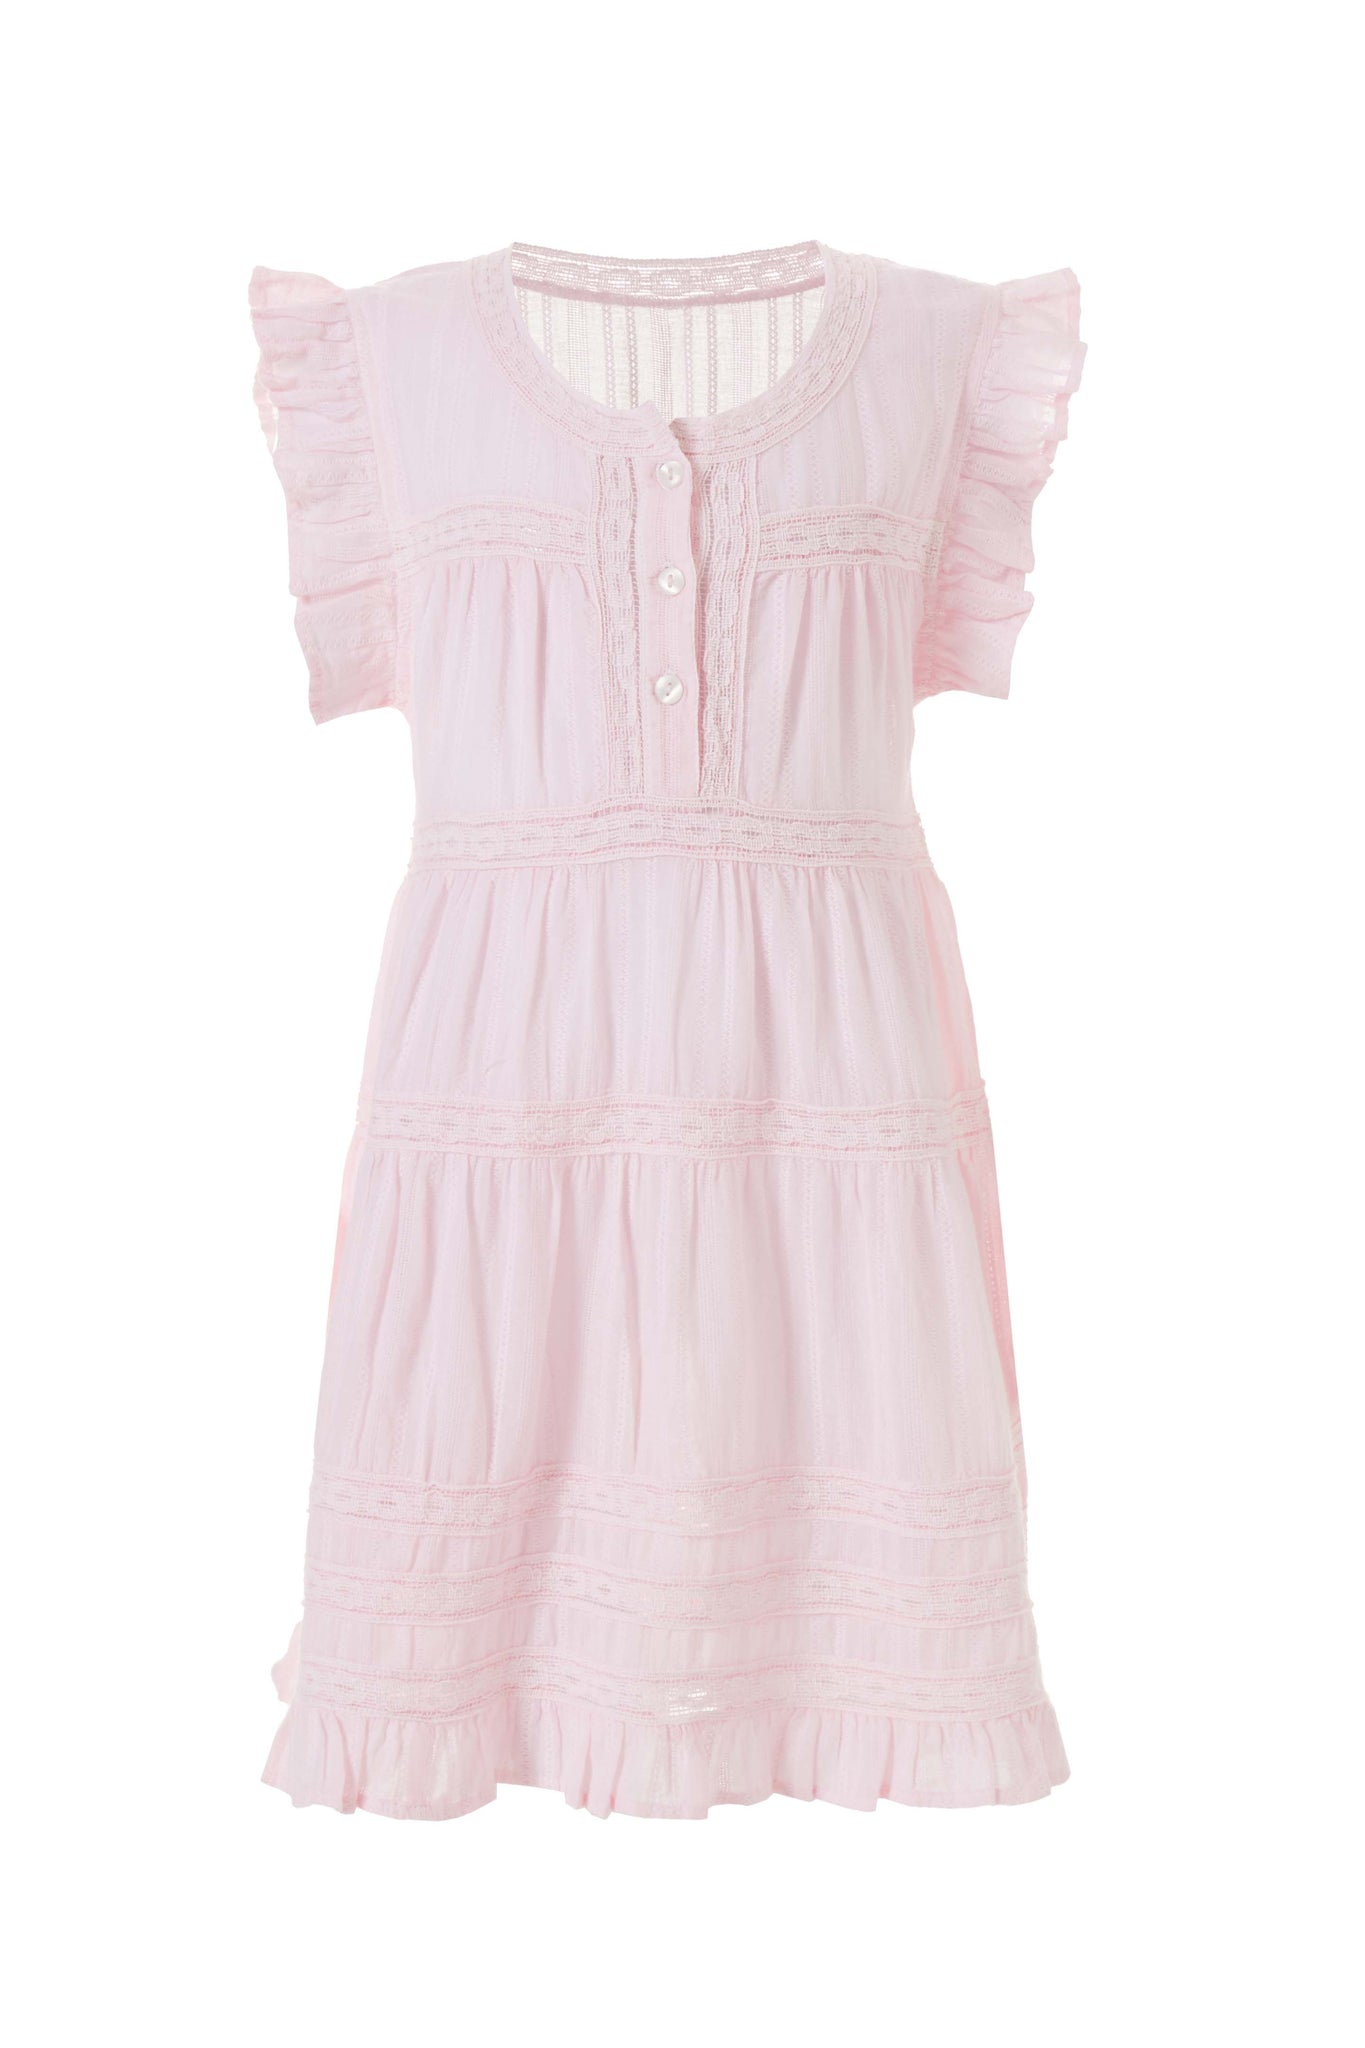 Baby Rebekah Blush Smock Dress